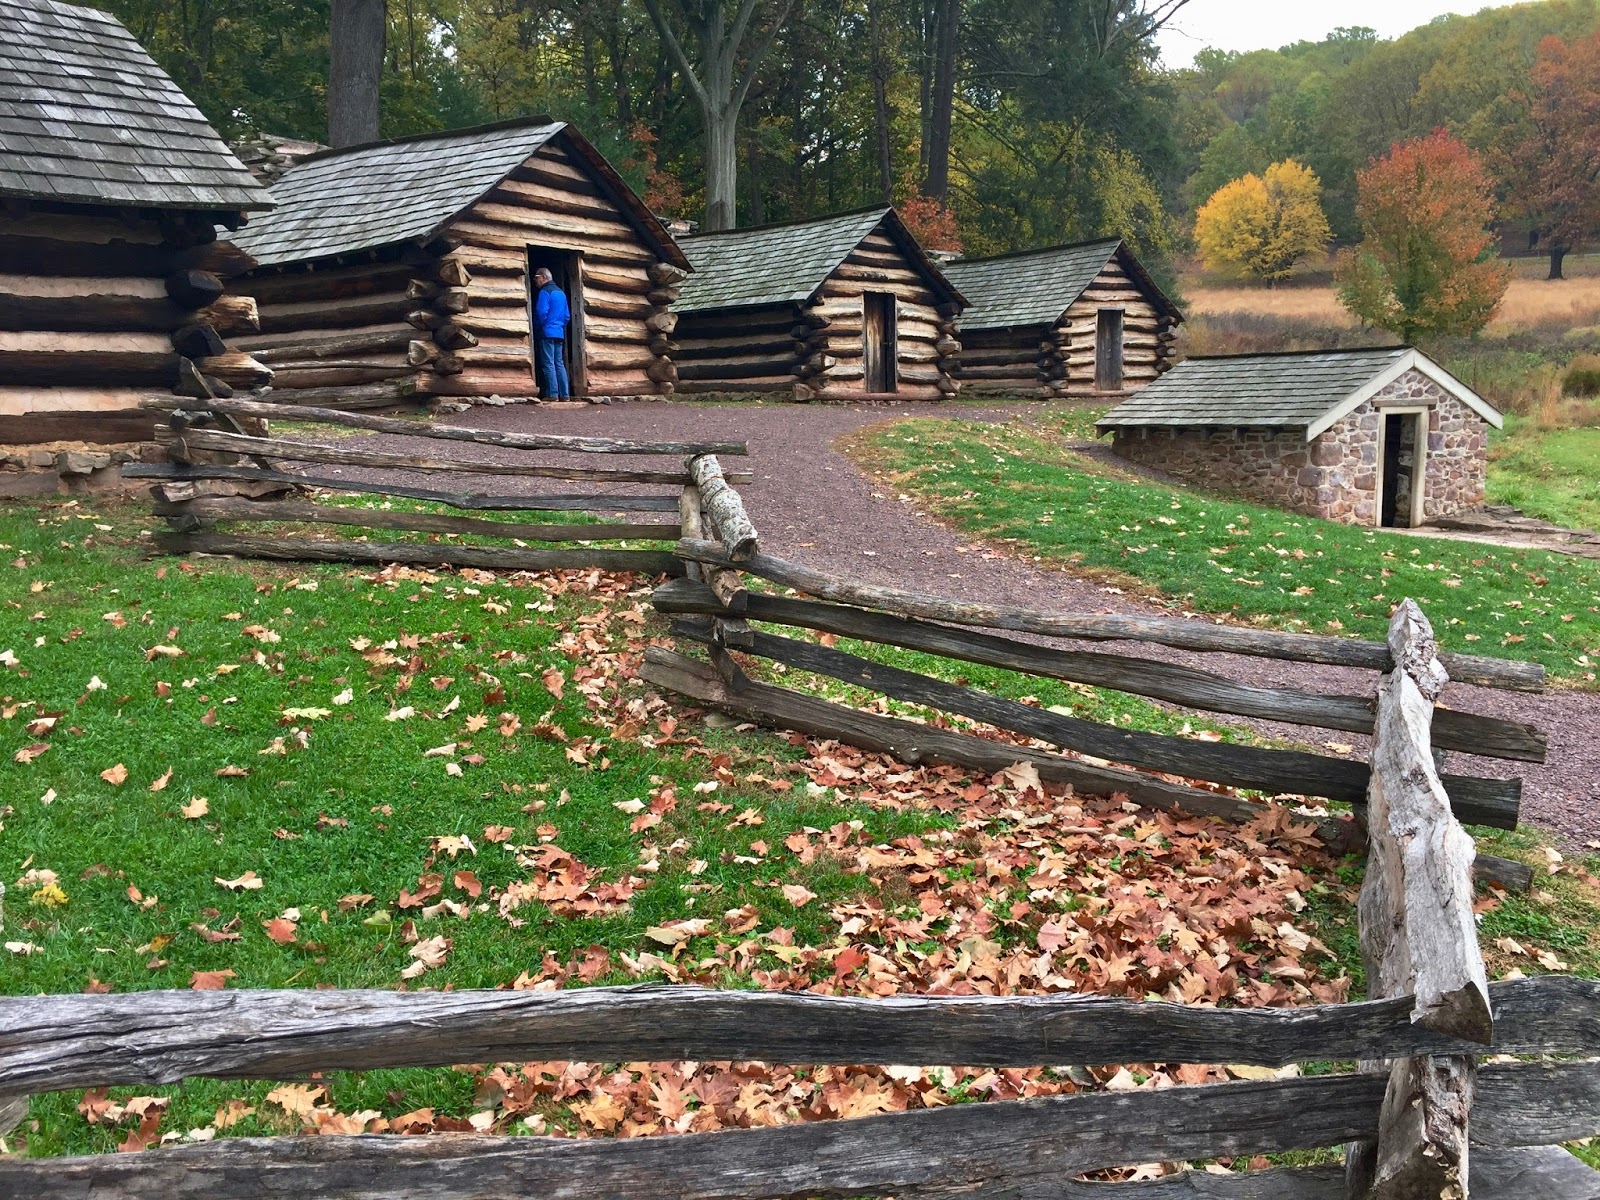 valley forge hindu personals Trail/beaver valley/rossland pennywise september 18, 2018  antique coal forge: working blower, coal, $500  10 7th hindu month 12 a large body of water.